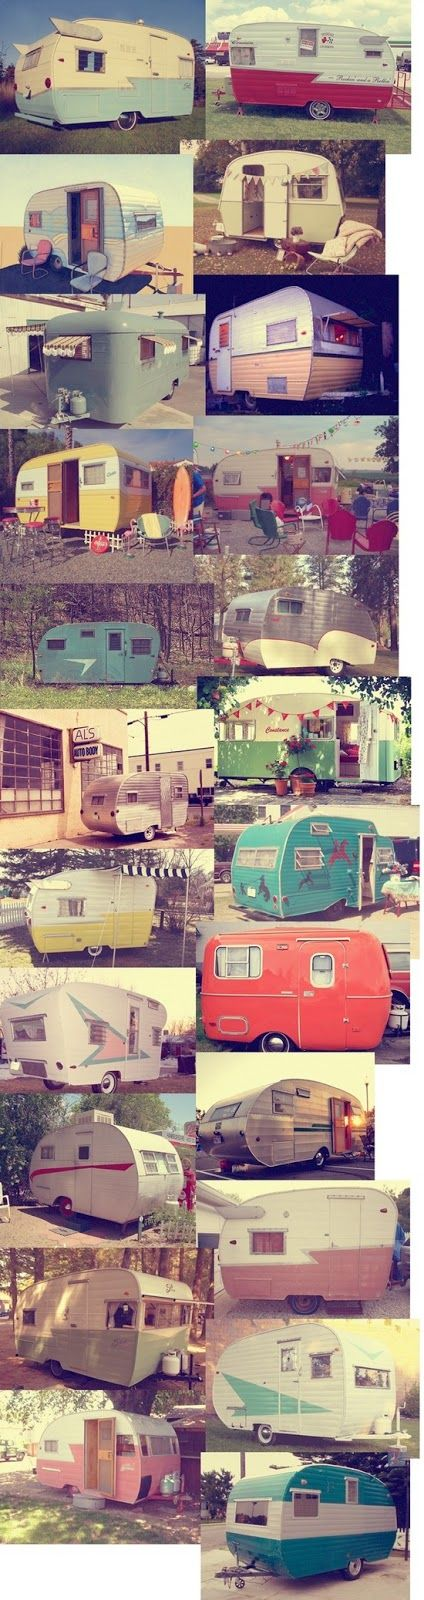 This is what's been on my mind lately. I have a bucket list and this is at the top of it. I want to own a little vintage camper :) I dream o...